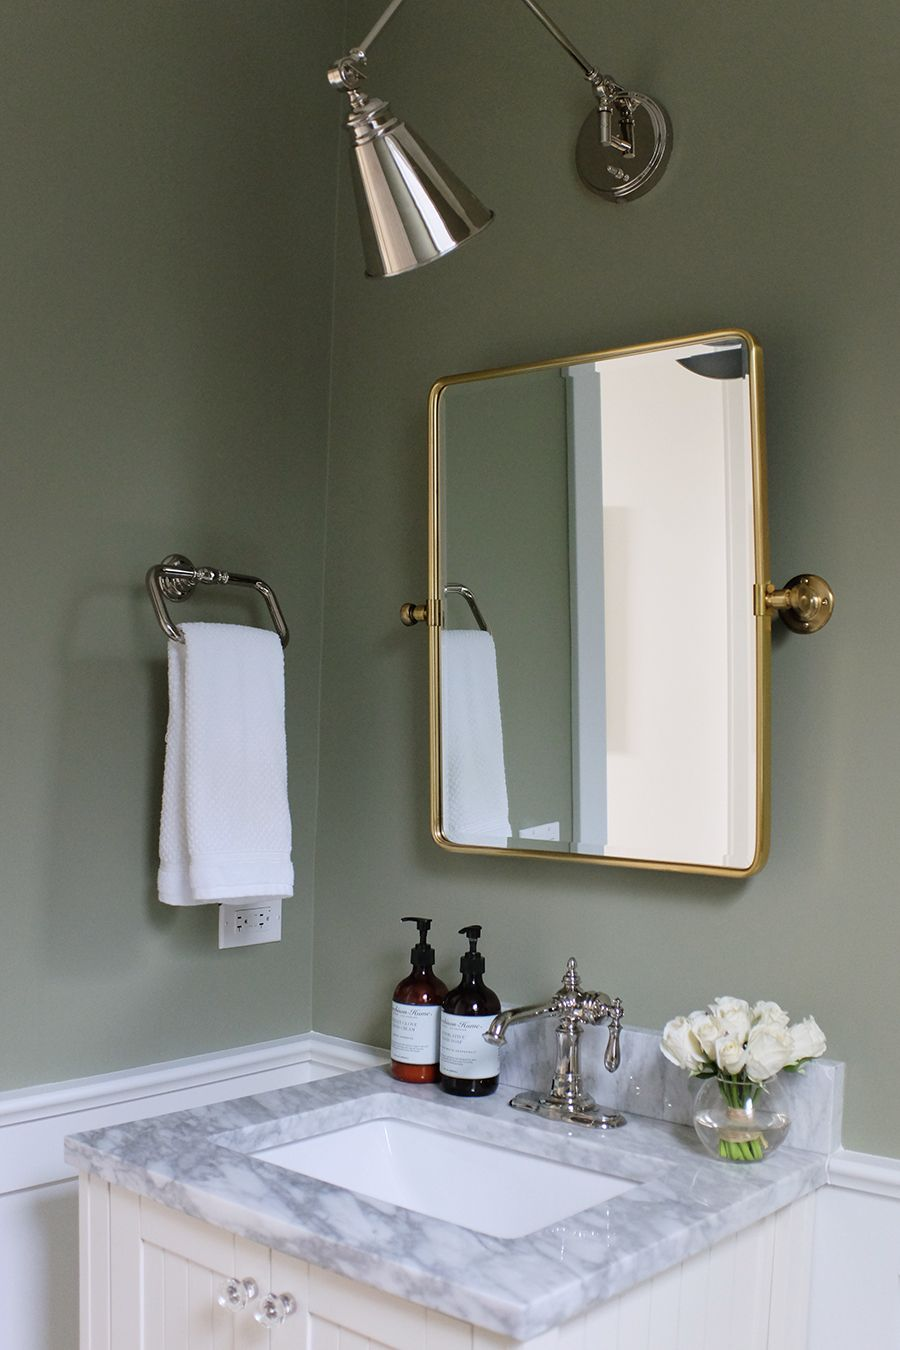 Our Powder Room Painting The Walls Sage Green Sage Green Bedroom Green Bedroom Walls Green Bathroom Paint